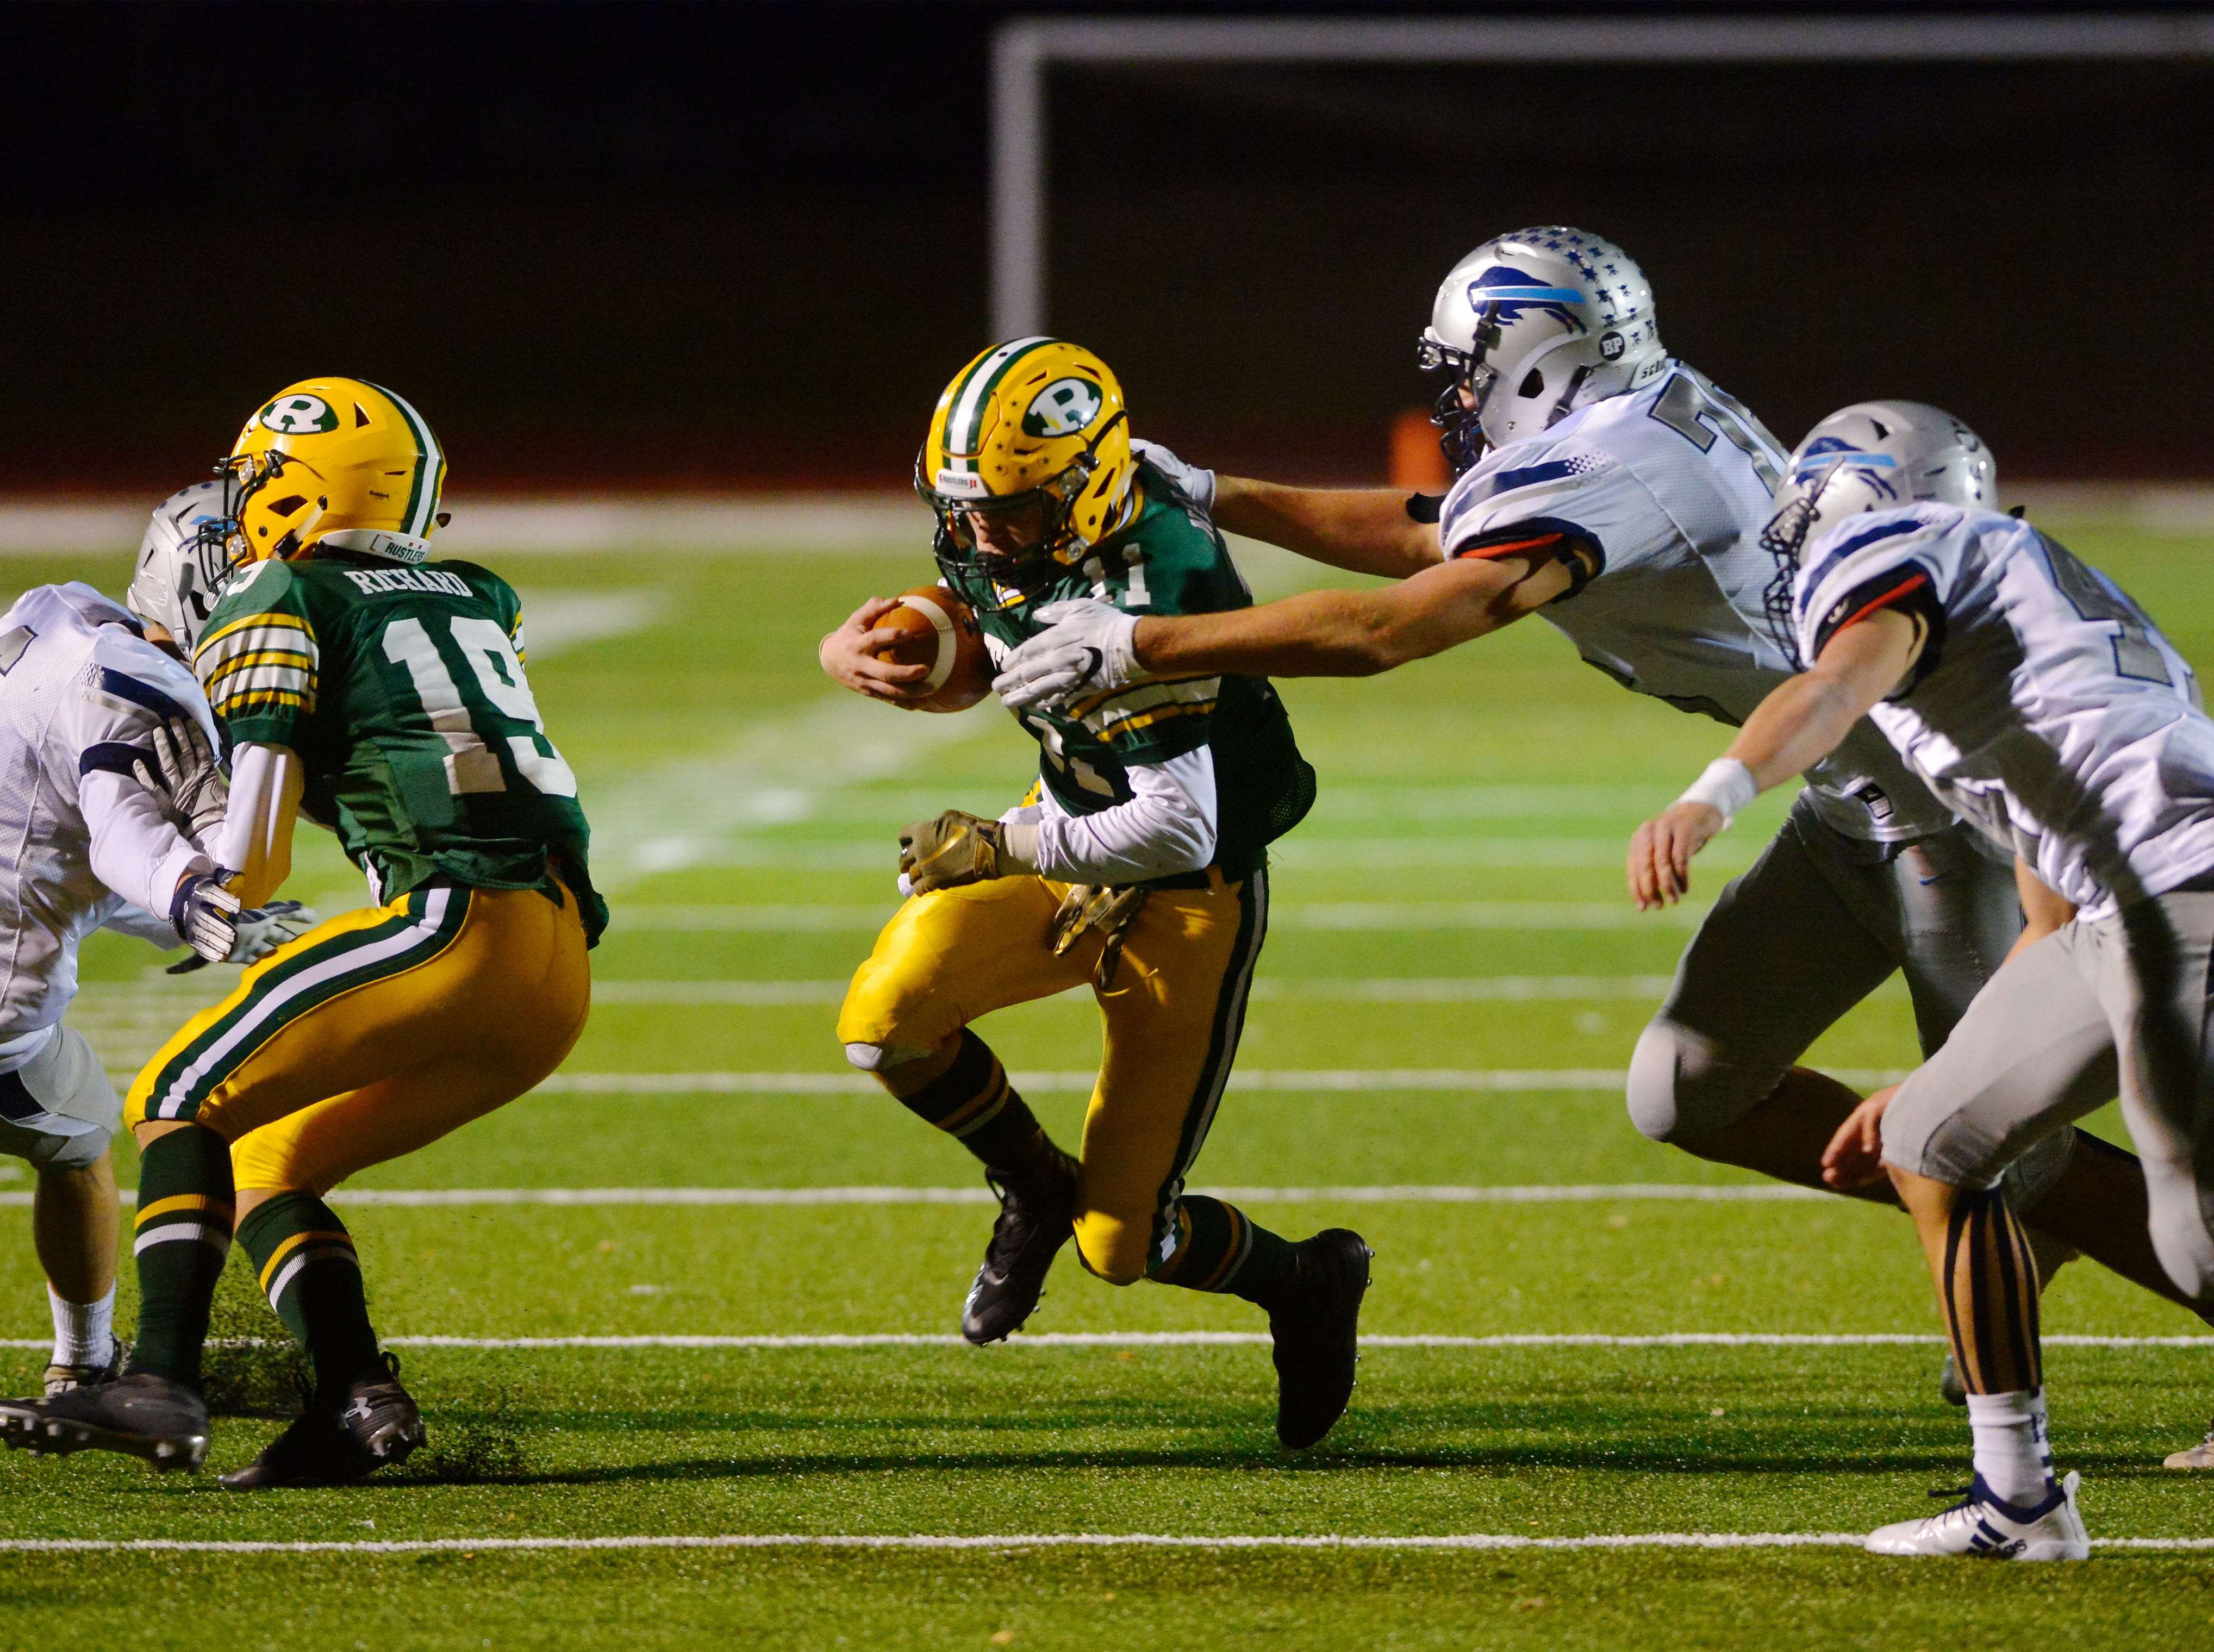 Crosstown football game between Great Falls High and CMR on Friday night at Memorial Stadium.